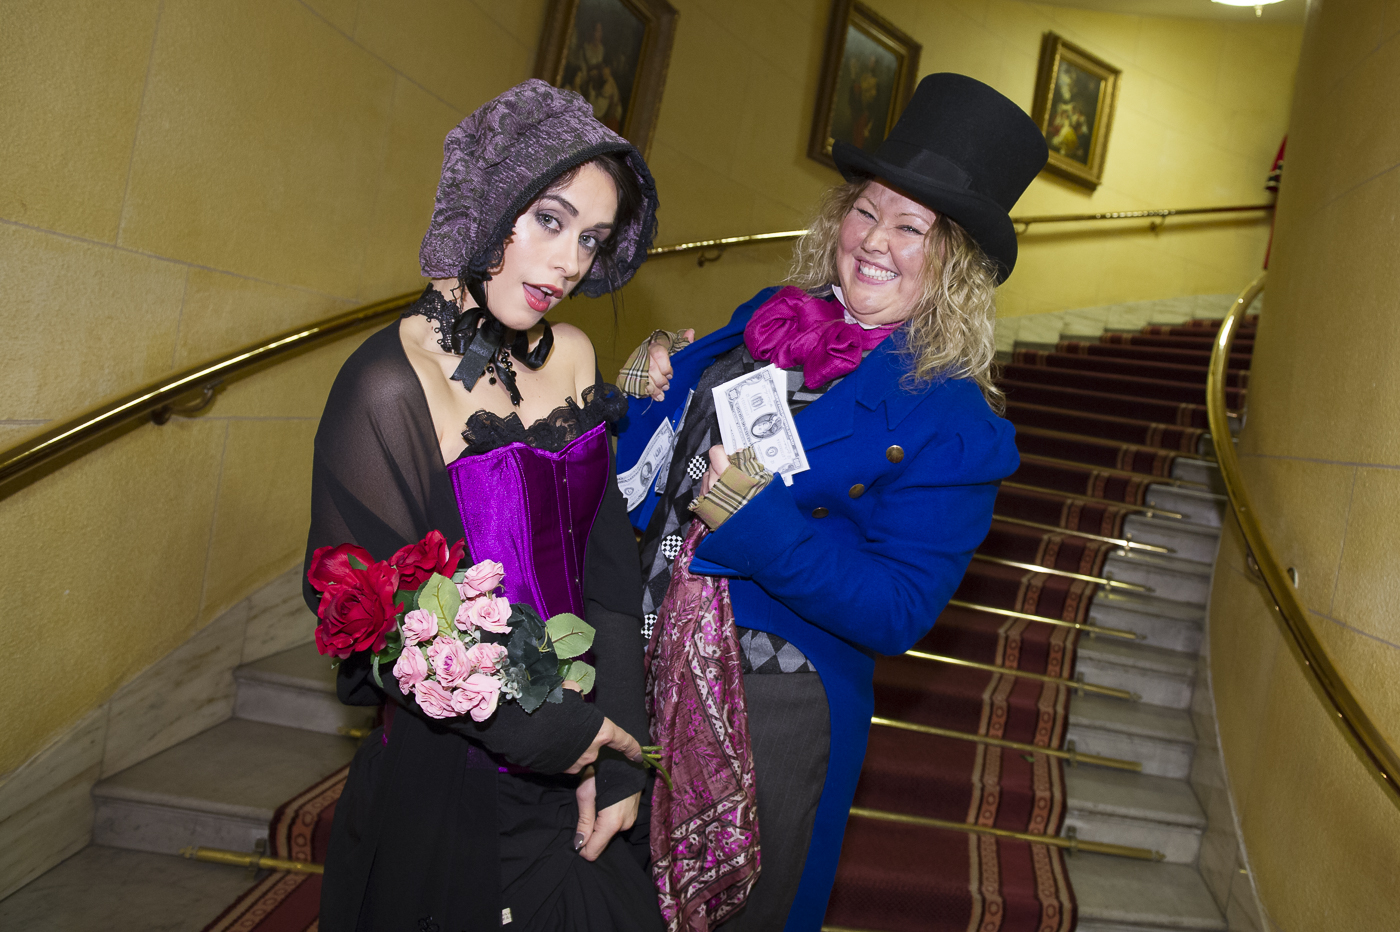 Dickensian theme festive party